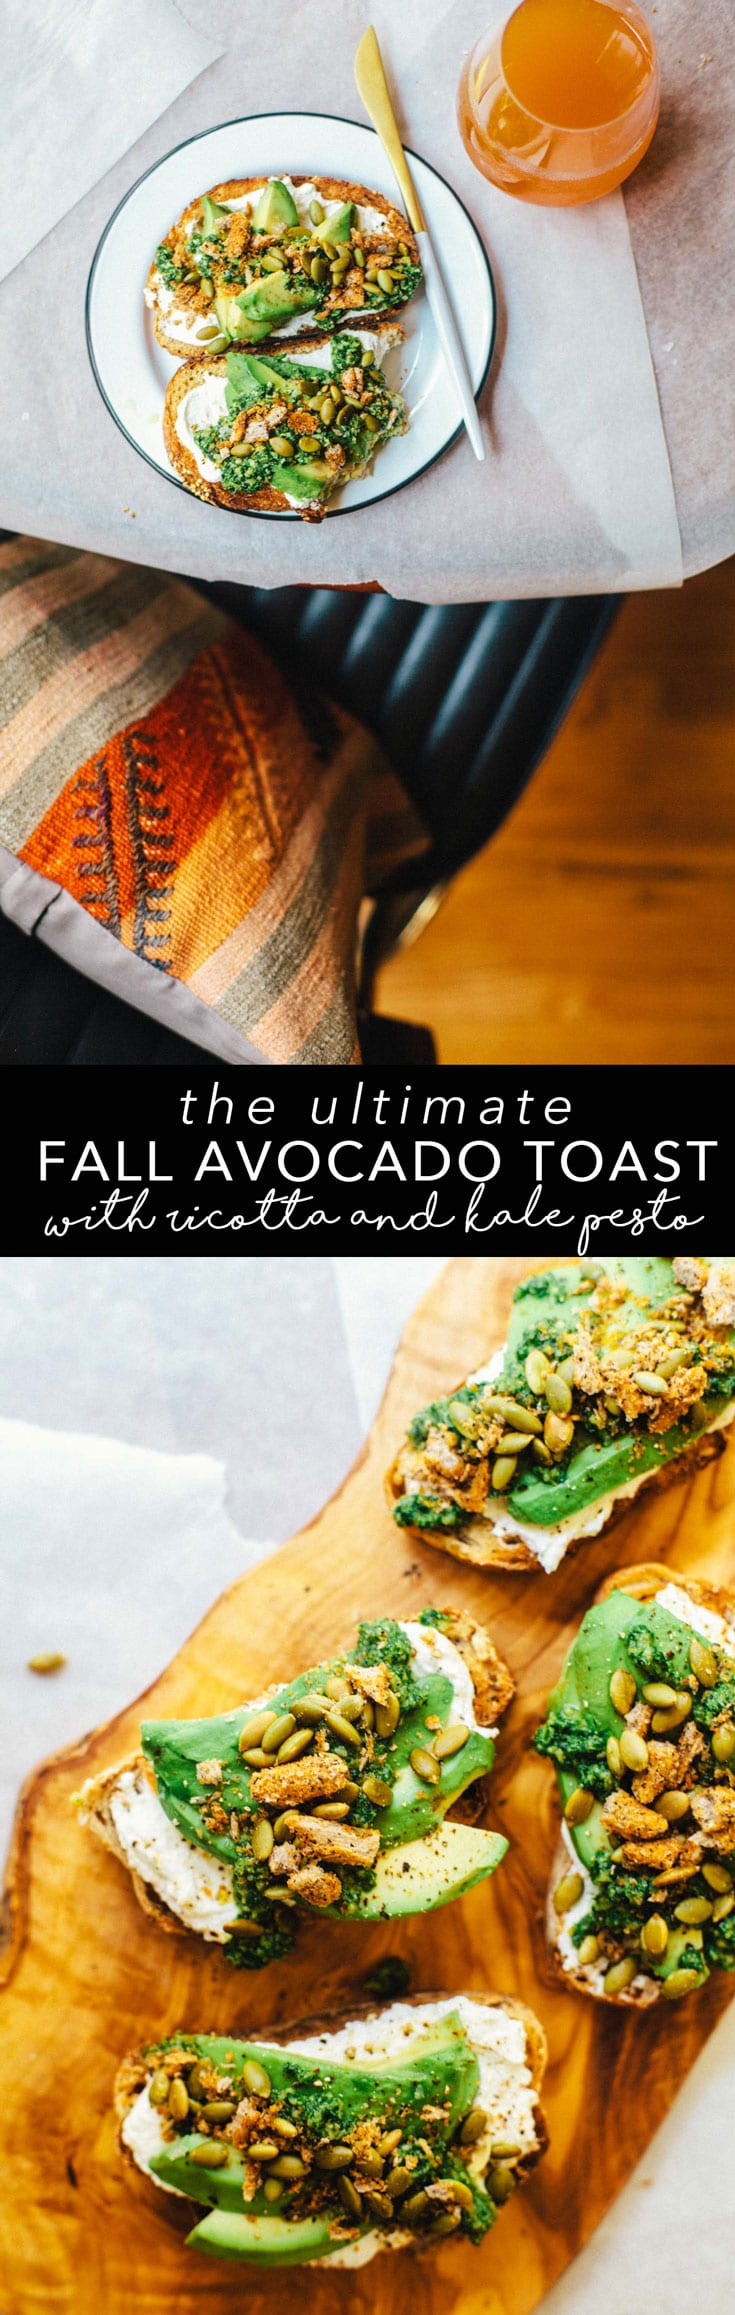 The ultimate Fall Avocado Toast with ricotta, kale pesto, pepitas, and habanero Harvest Snaps. It's great for snack, lunch, or dinner! #brewinghappiness #avocadotoast #recipe #healthy #vegetarian